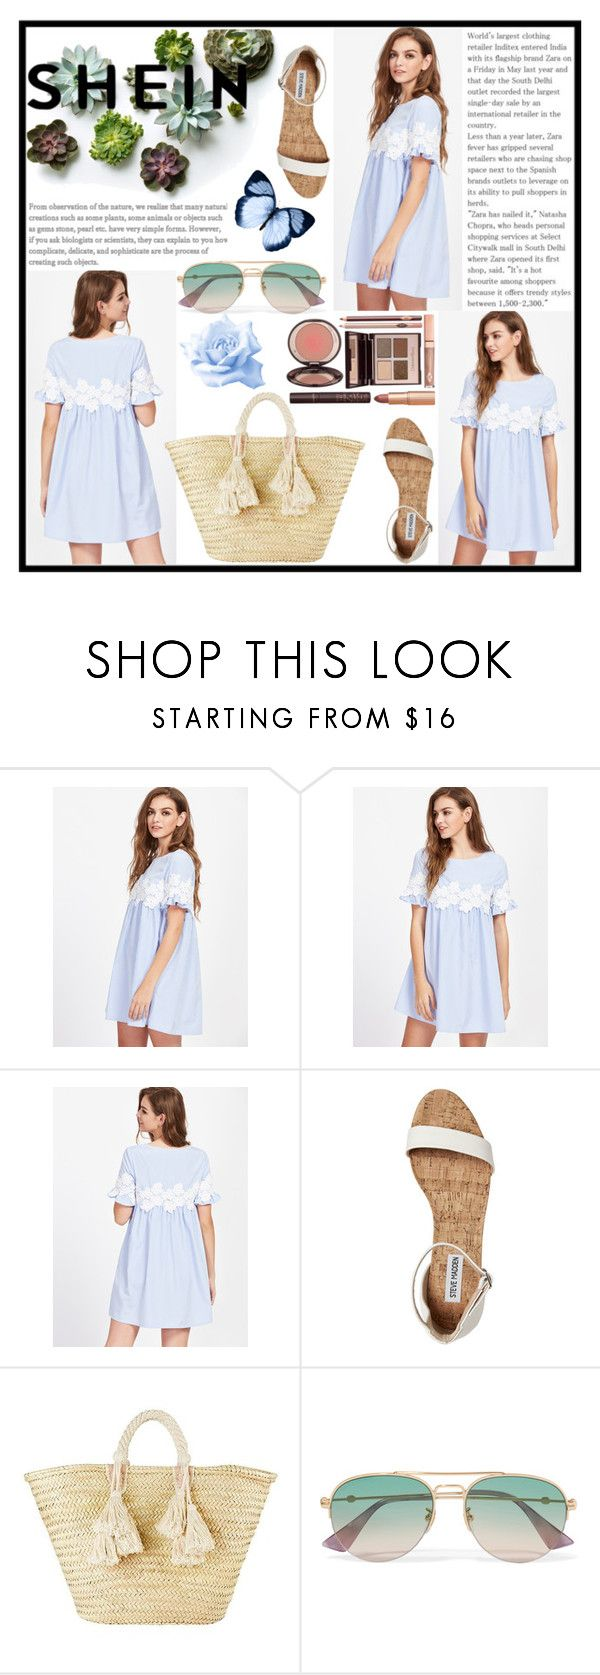 """""""Vestito babydoll a strisce con maniche a volant,con applique in pizzo floreale"""" by manuelsbolli ❤ liked on Polyvore featuring Giselle, Gucci and Charlotte Tilbury"""